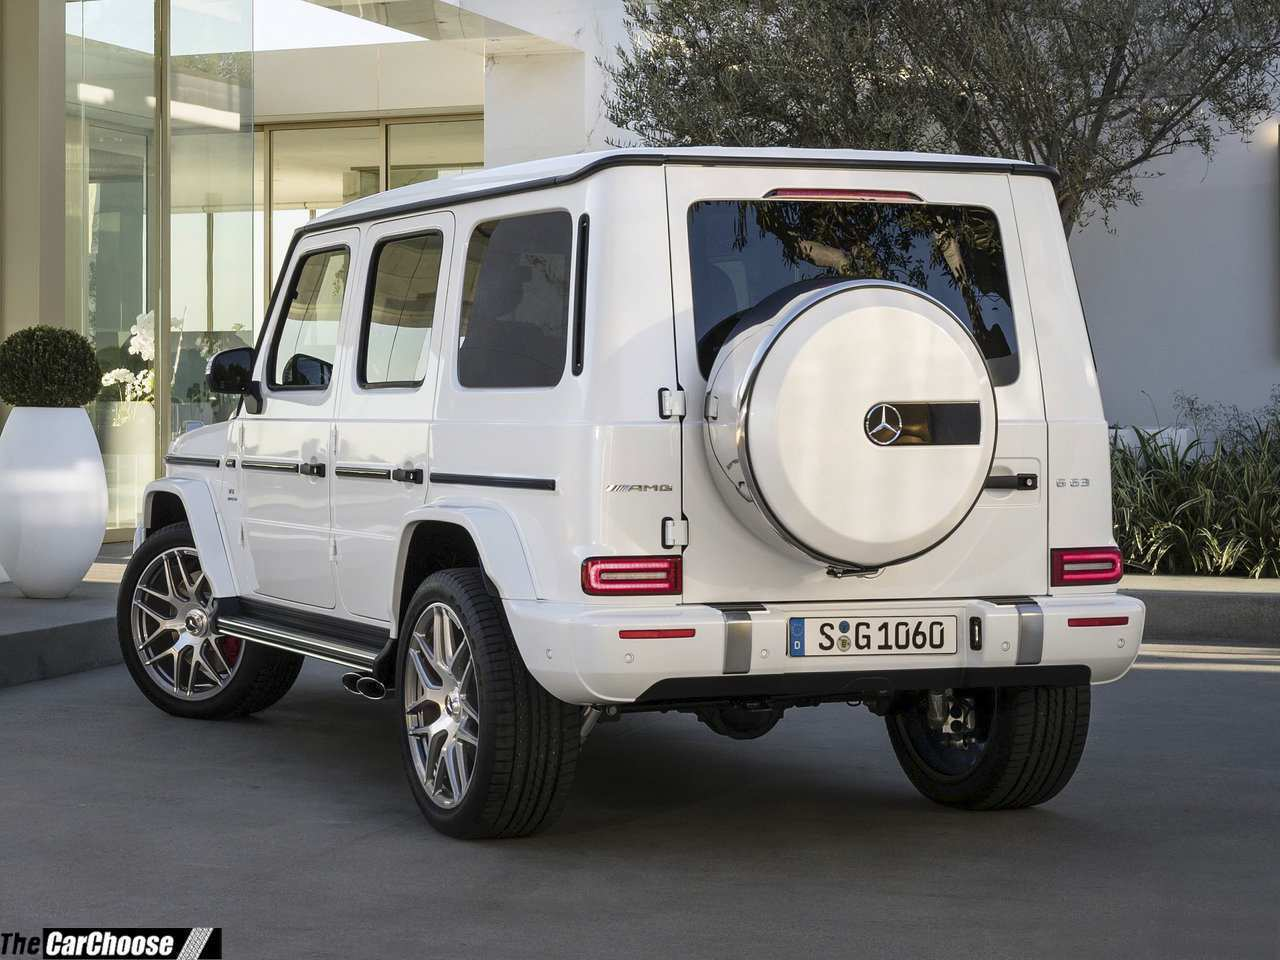 13 All New Mercedes G63 2020 Exterior Pricing for Mercedes G63 2020 Exterior